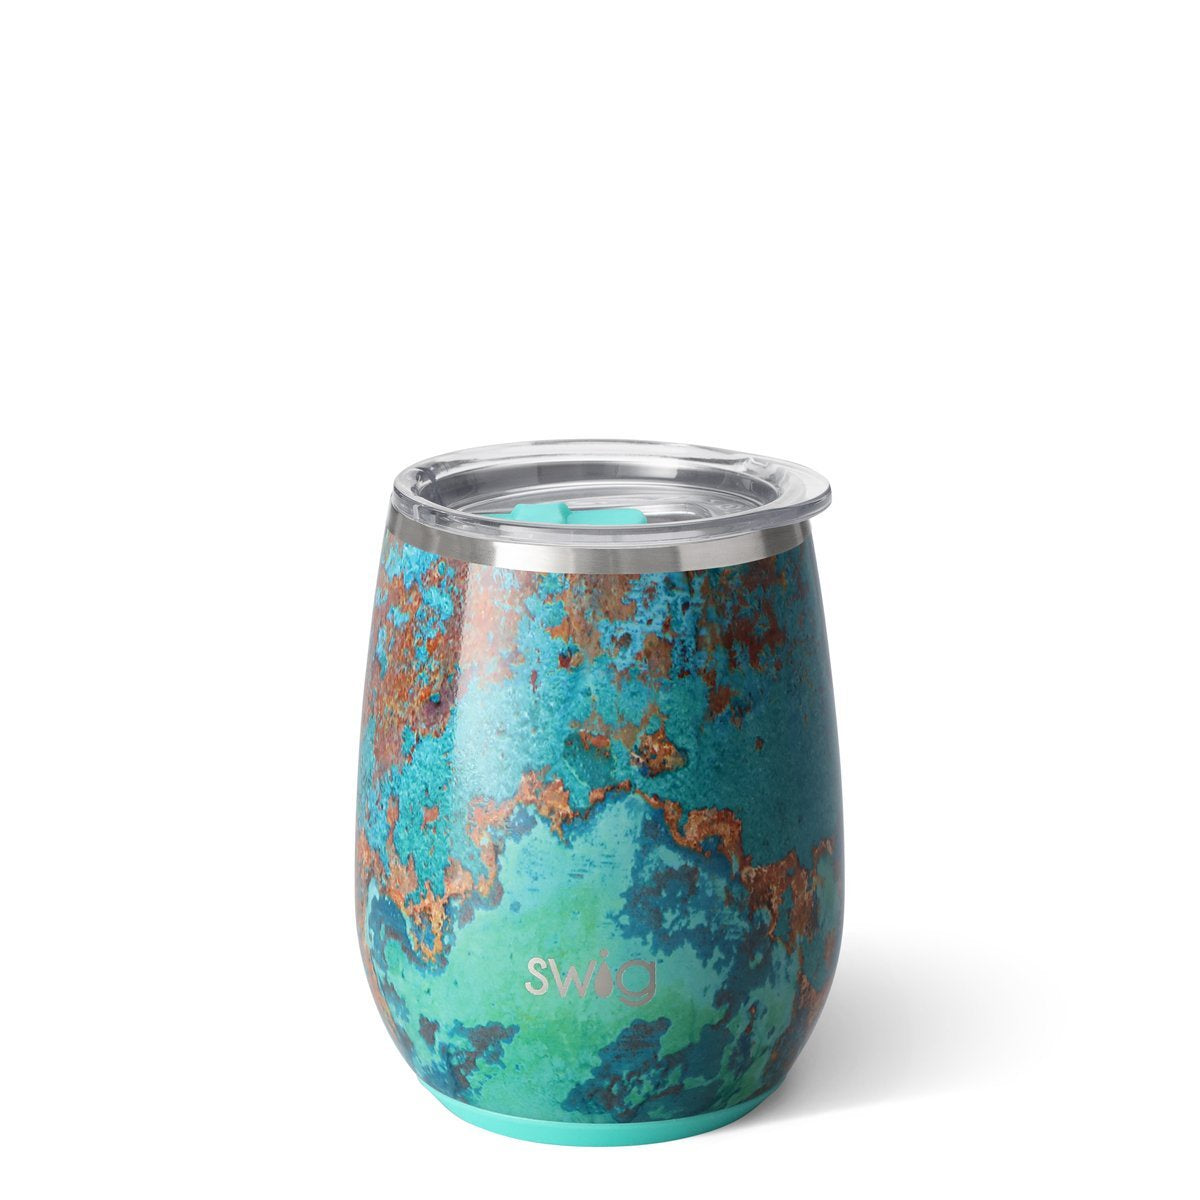 SWIG - 14 OZ STEMLESS WINE CUP IN COPPER PATINA